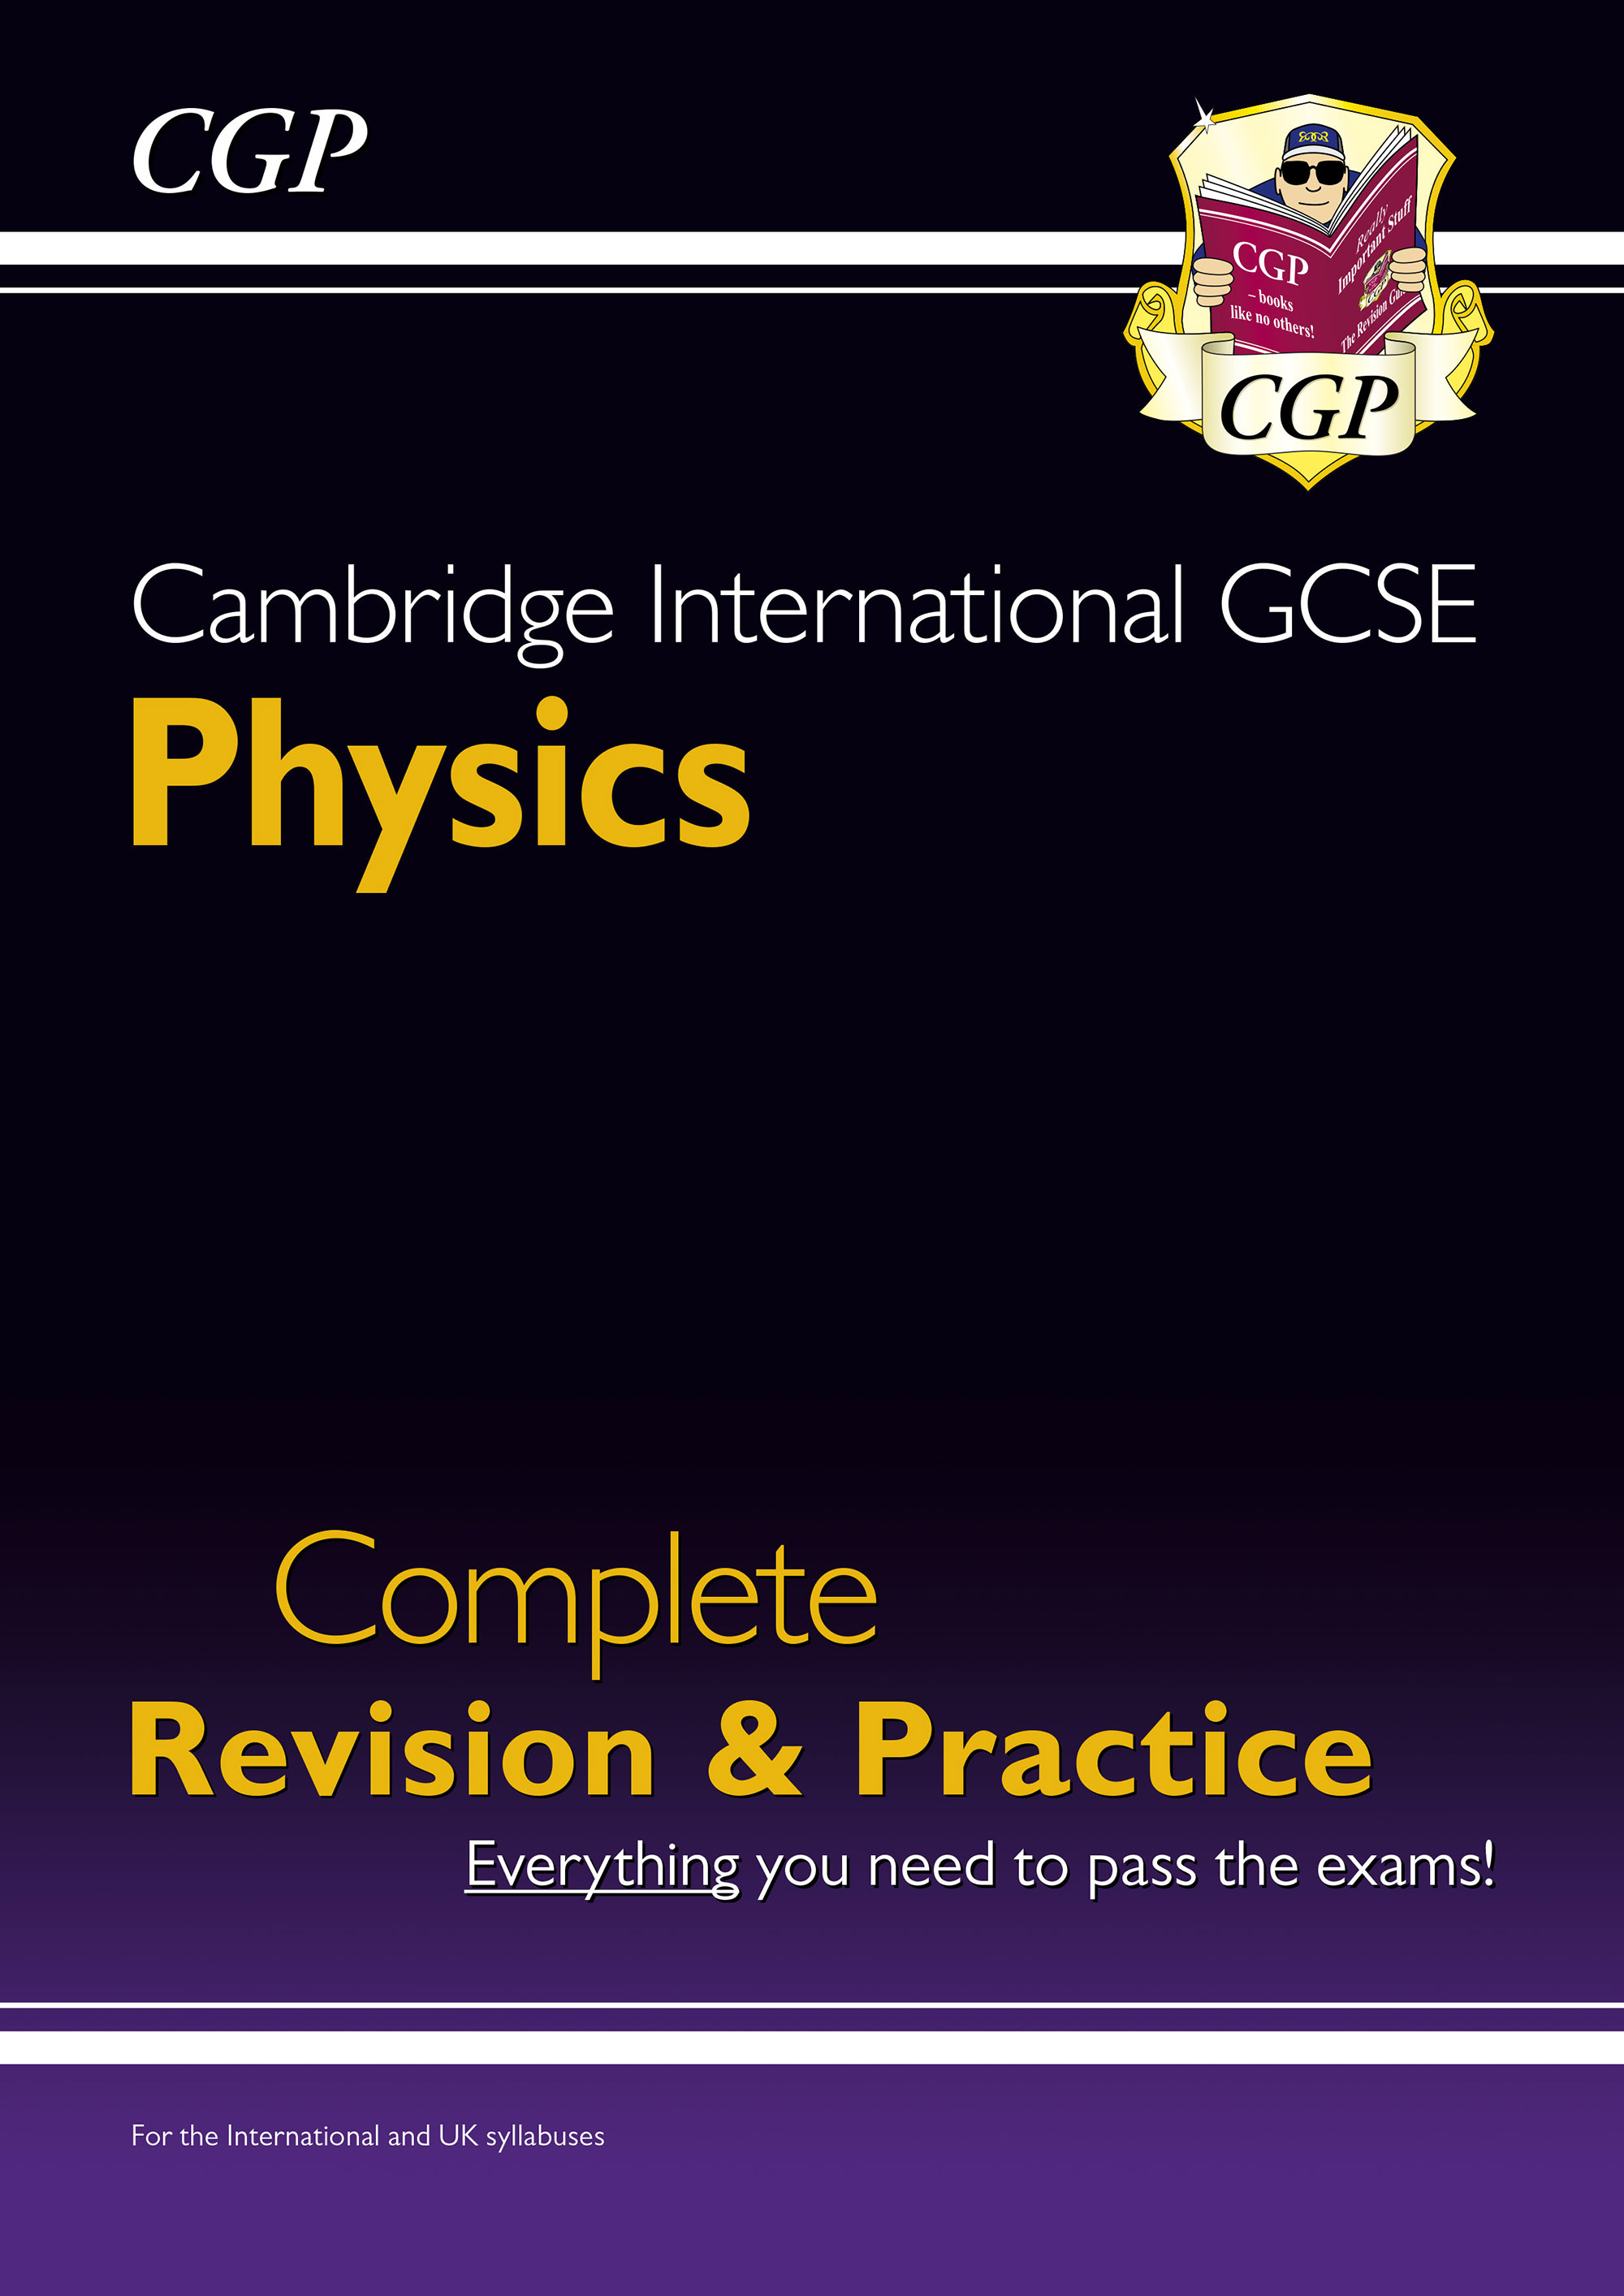 PISI41DK - New Cambridge International GCSE Physics Complete Revision & Practice: Core & Extended